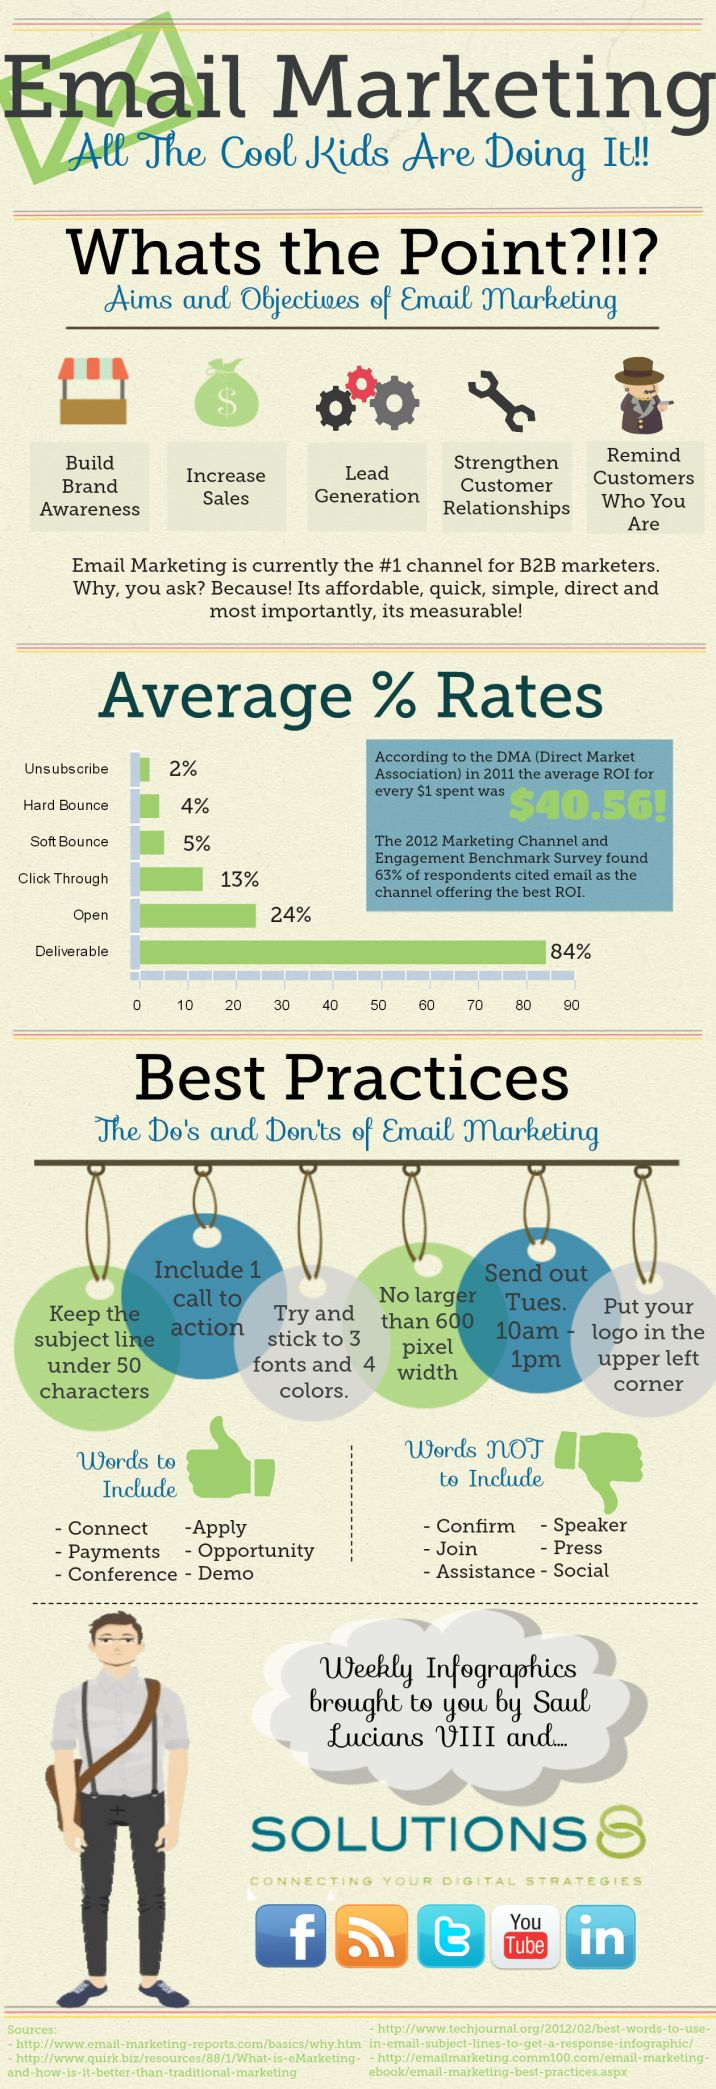 Email Marketing: All the Cool Kids are Doing It [INFOGRAPHIC]